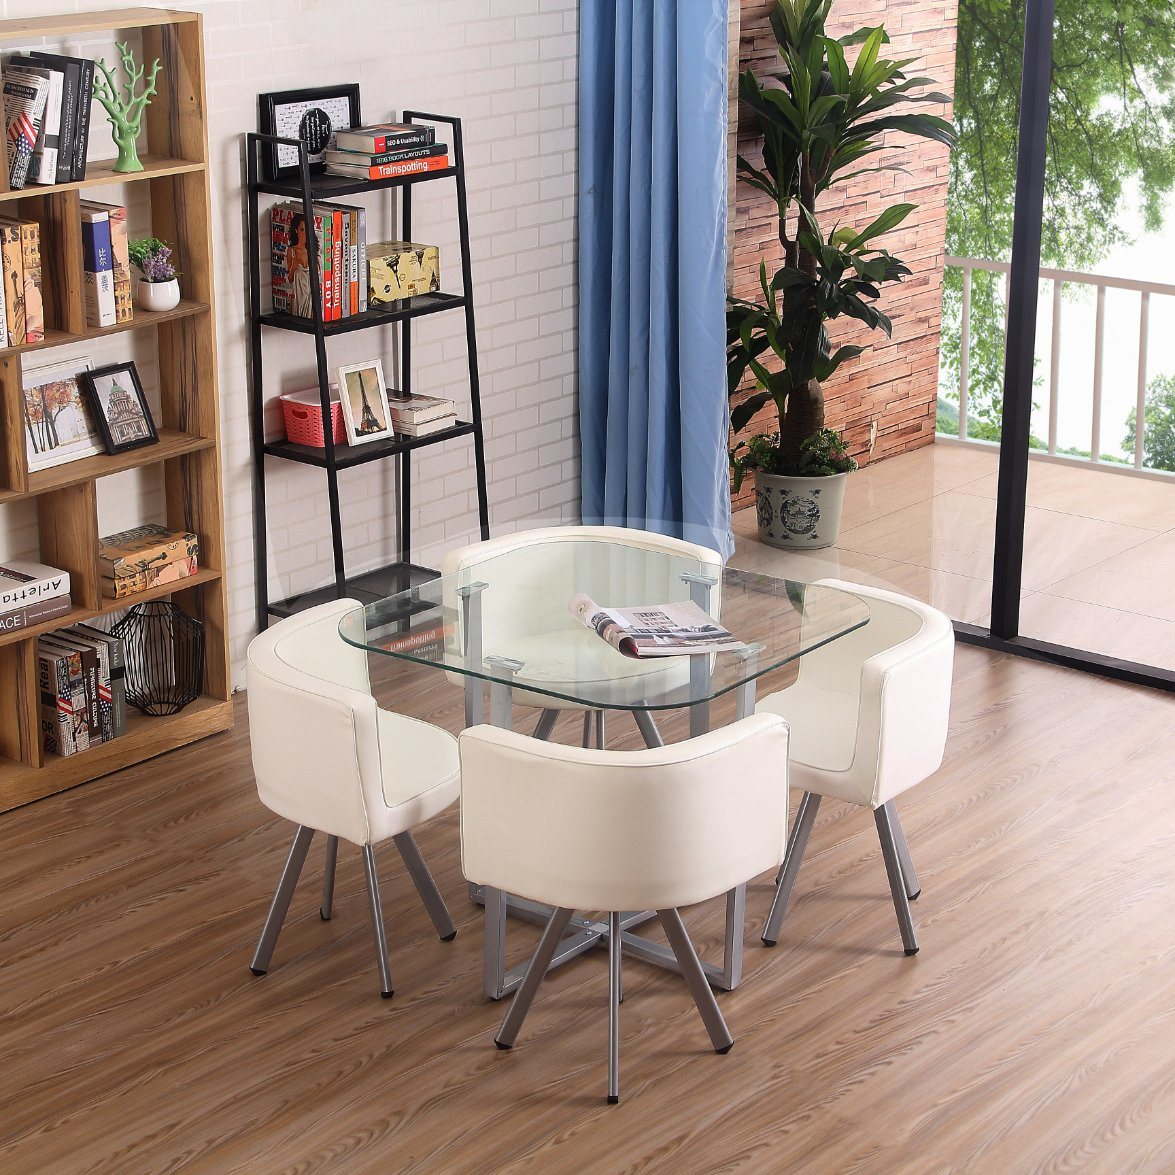 China Factory Dining Table And Chair Sets Dining Room Sets Modern Furniture Luxury Dining Table Design Customized Furniture China Dining Table Design Dining Table And Chair Sets